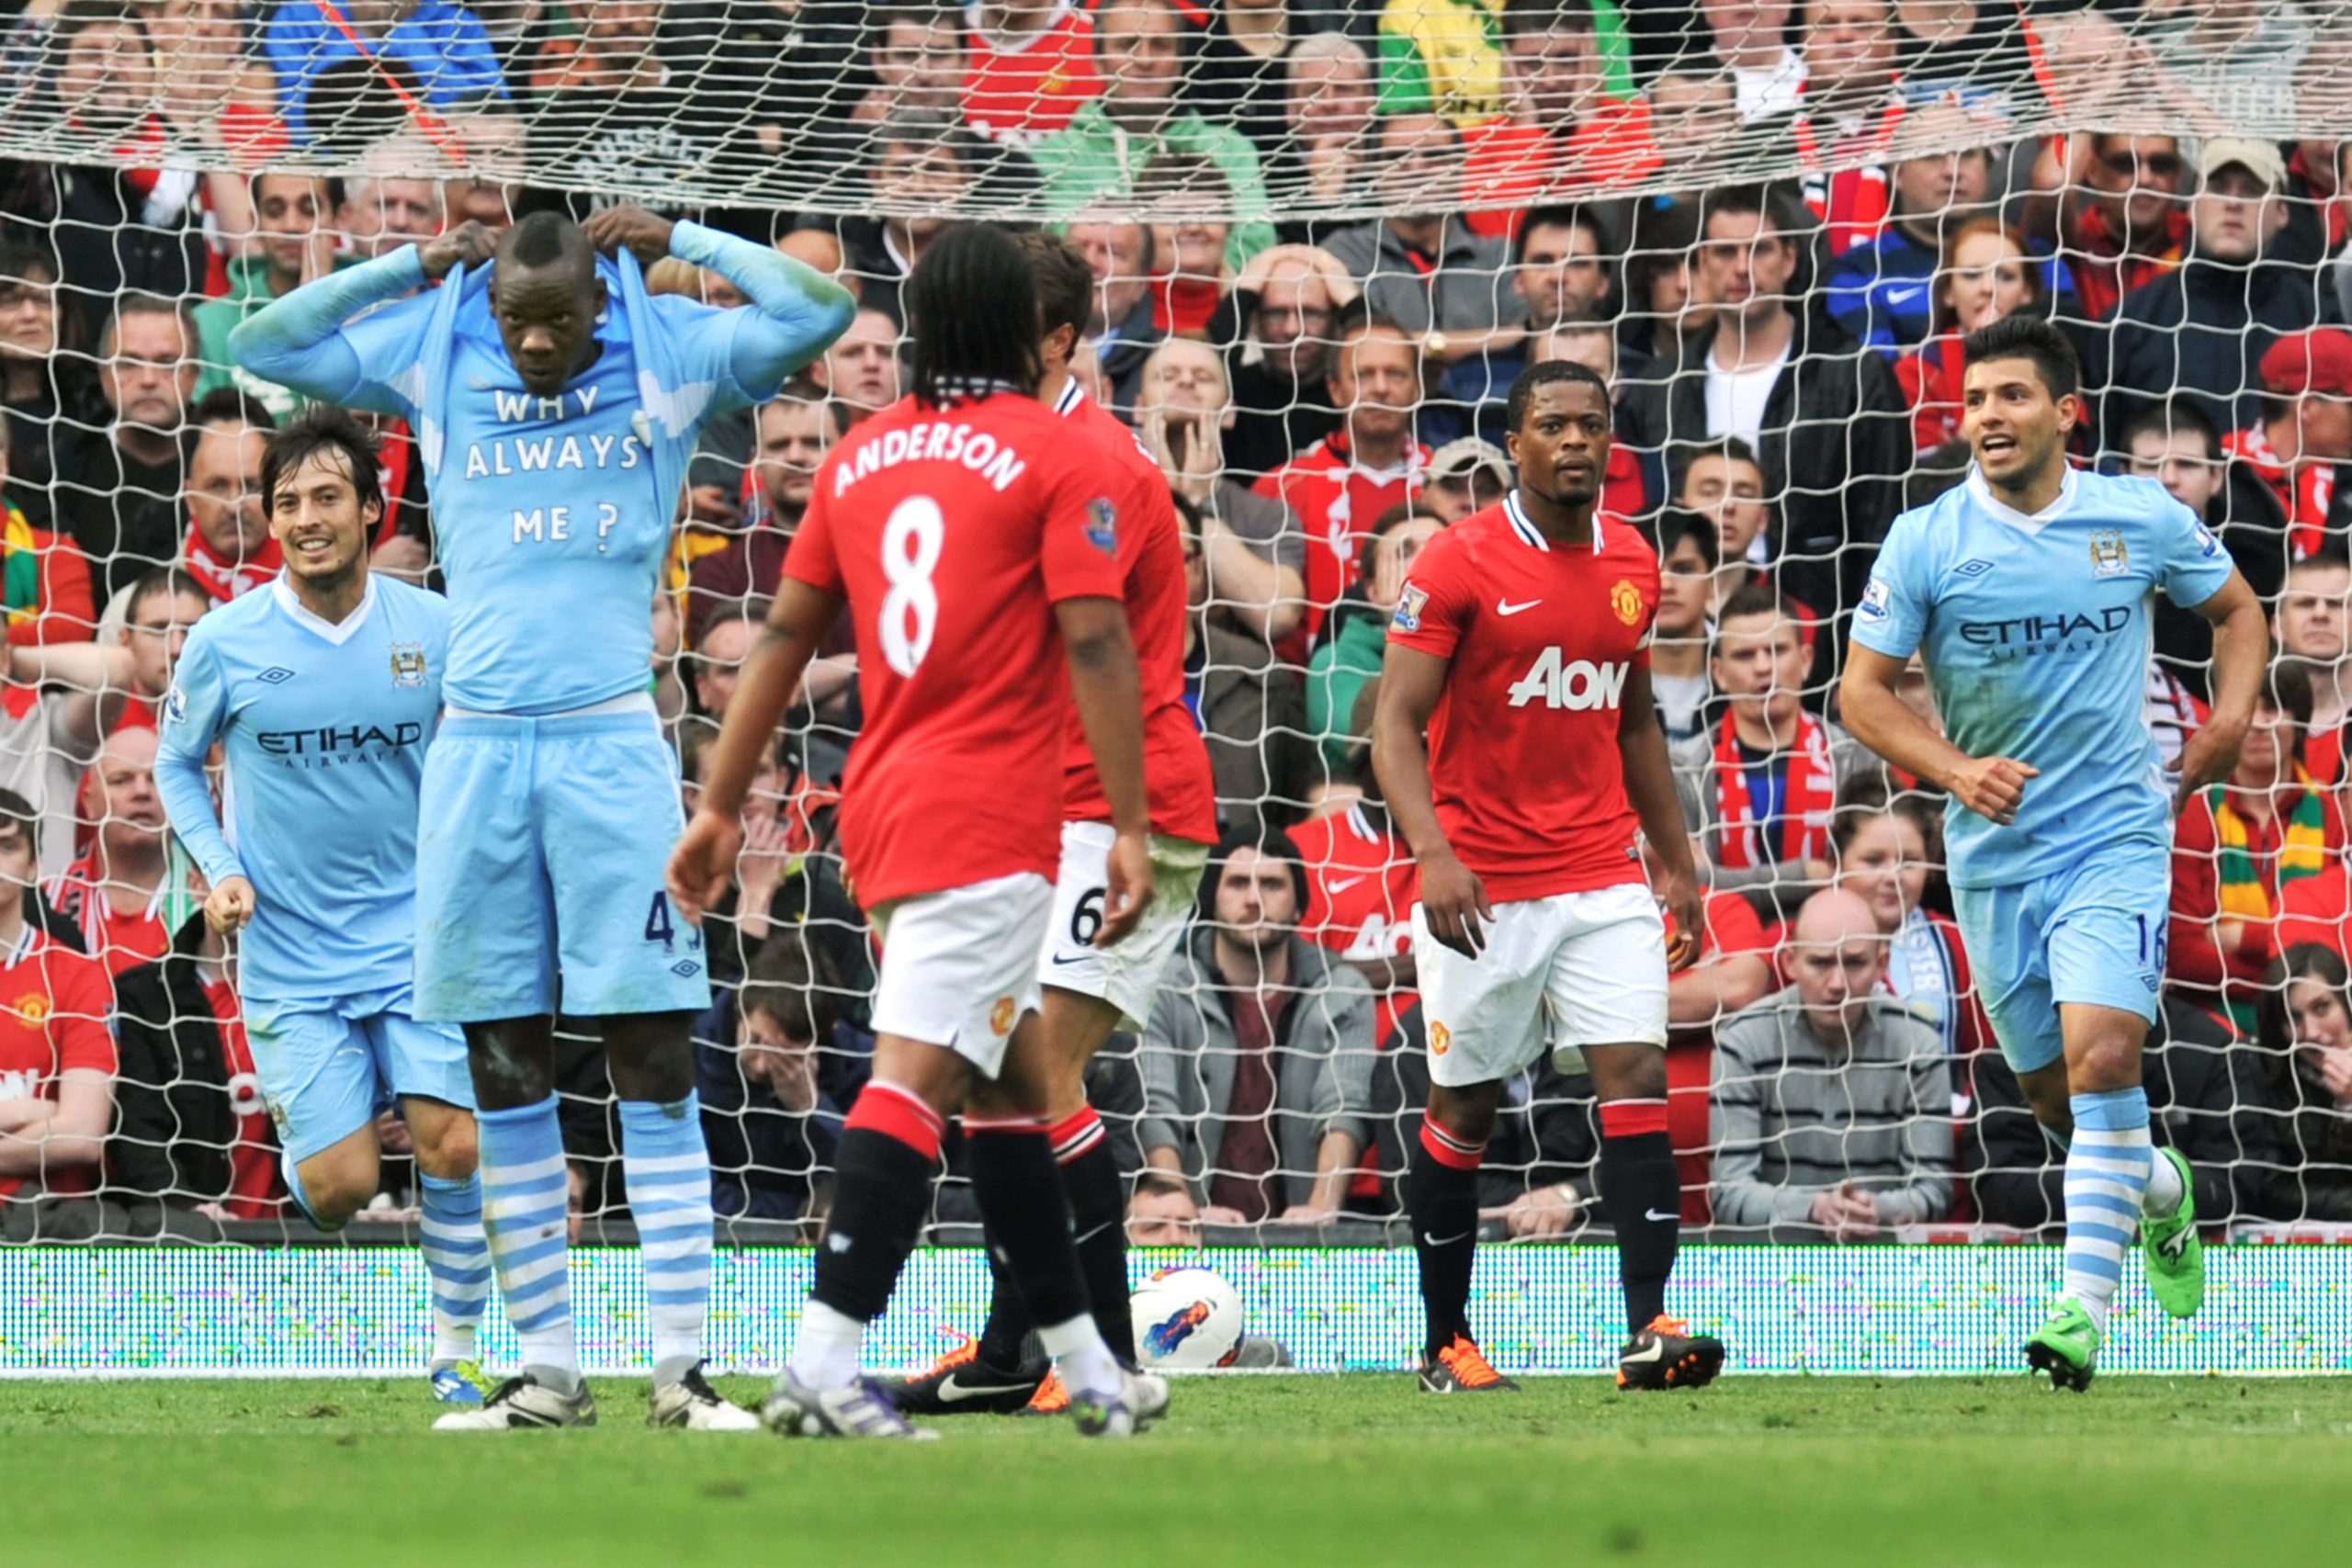 Six of the Best: Manchester United vs Manchester City games at Old Trafford